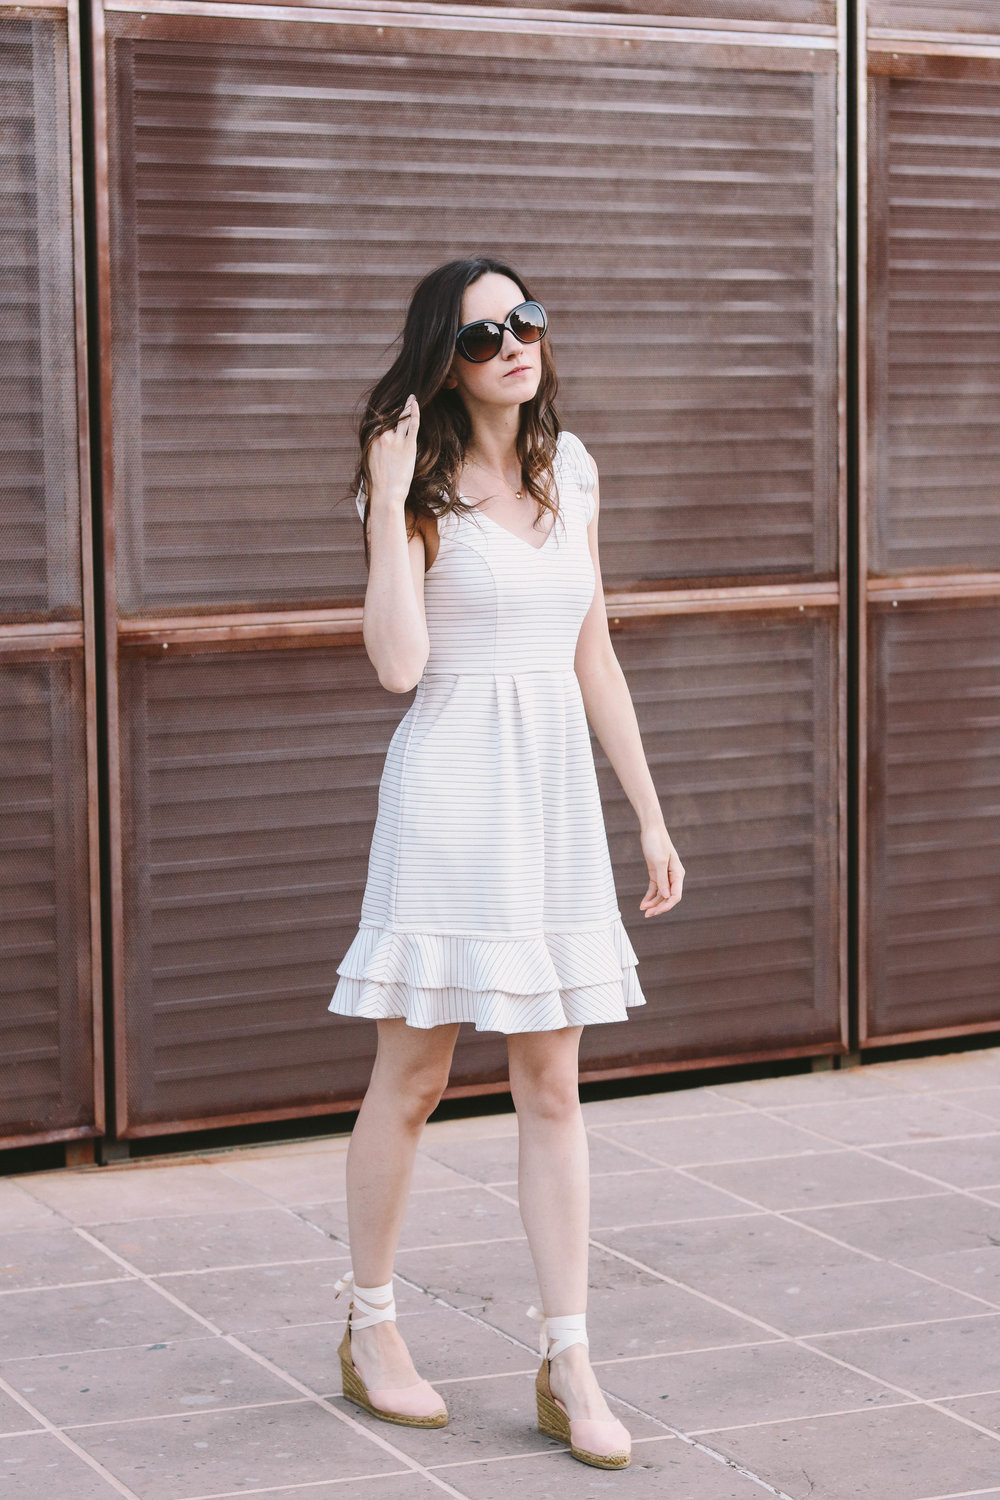 bb-white-dresses-spring-002 (1 of 1).jpg